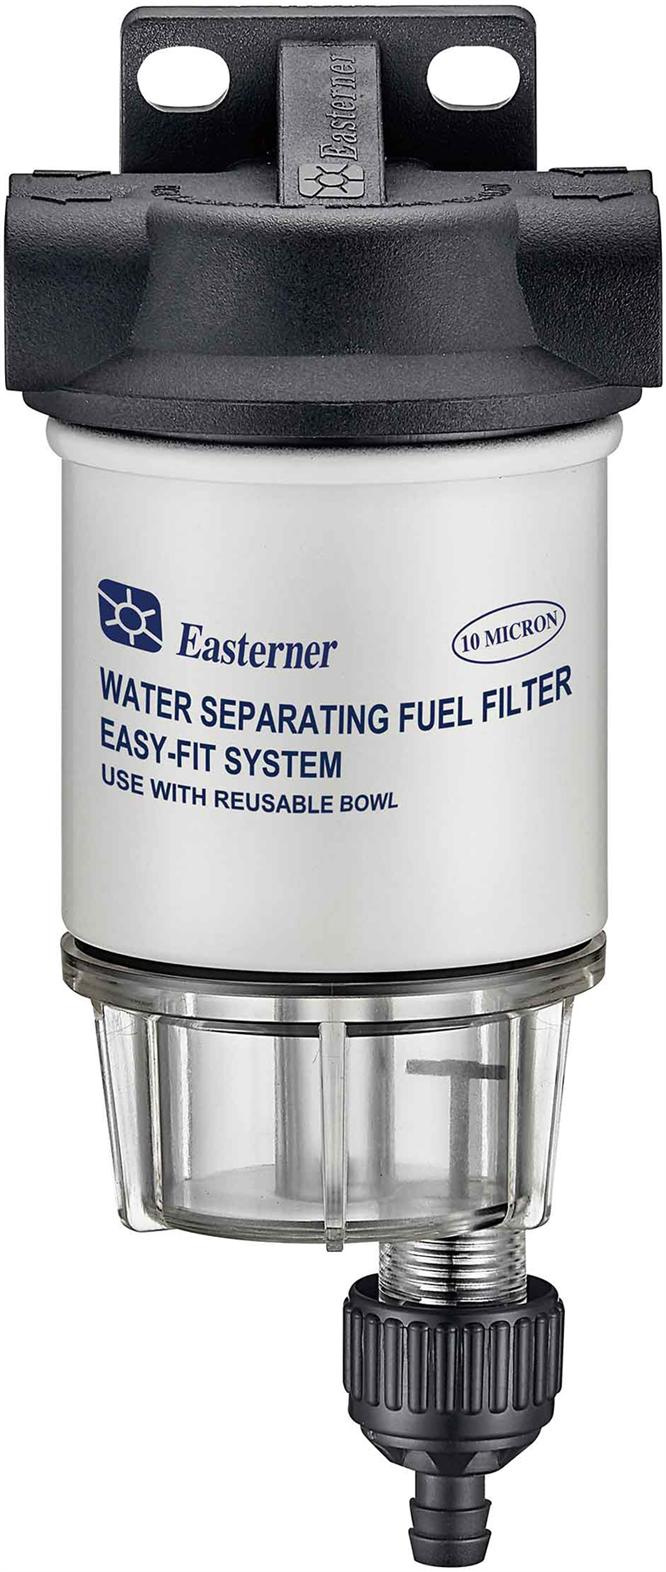 General Chandlery - Outboard Accessories - Fuel Filters